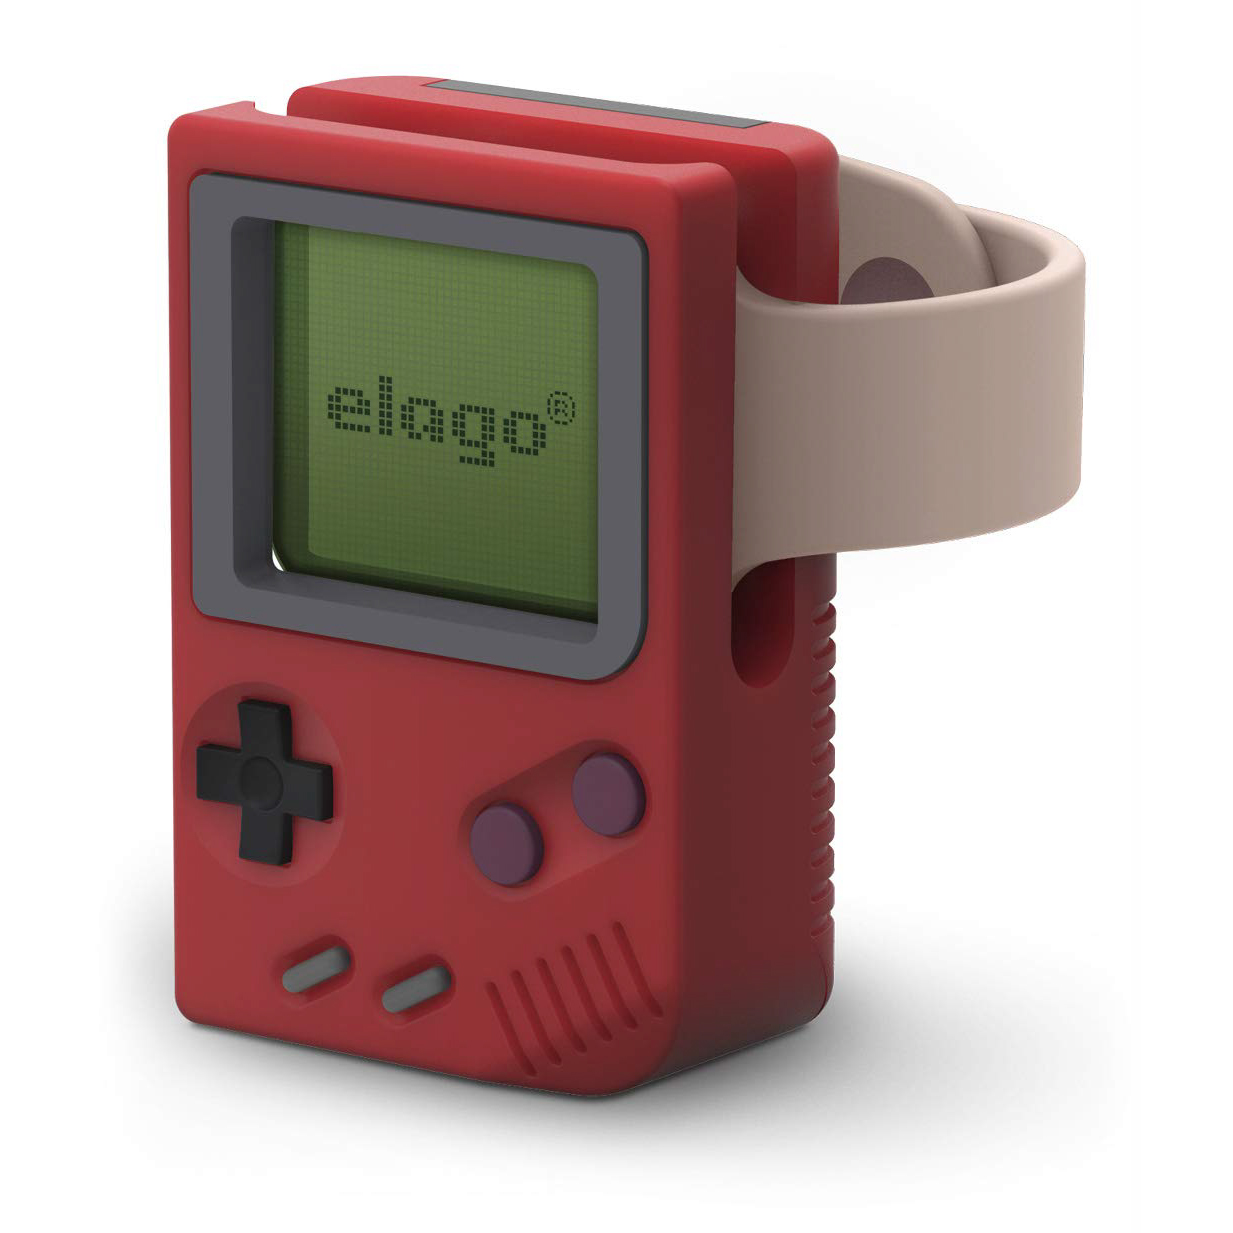 Elago-Red-Game-Boy-W5-Stand.jpg